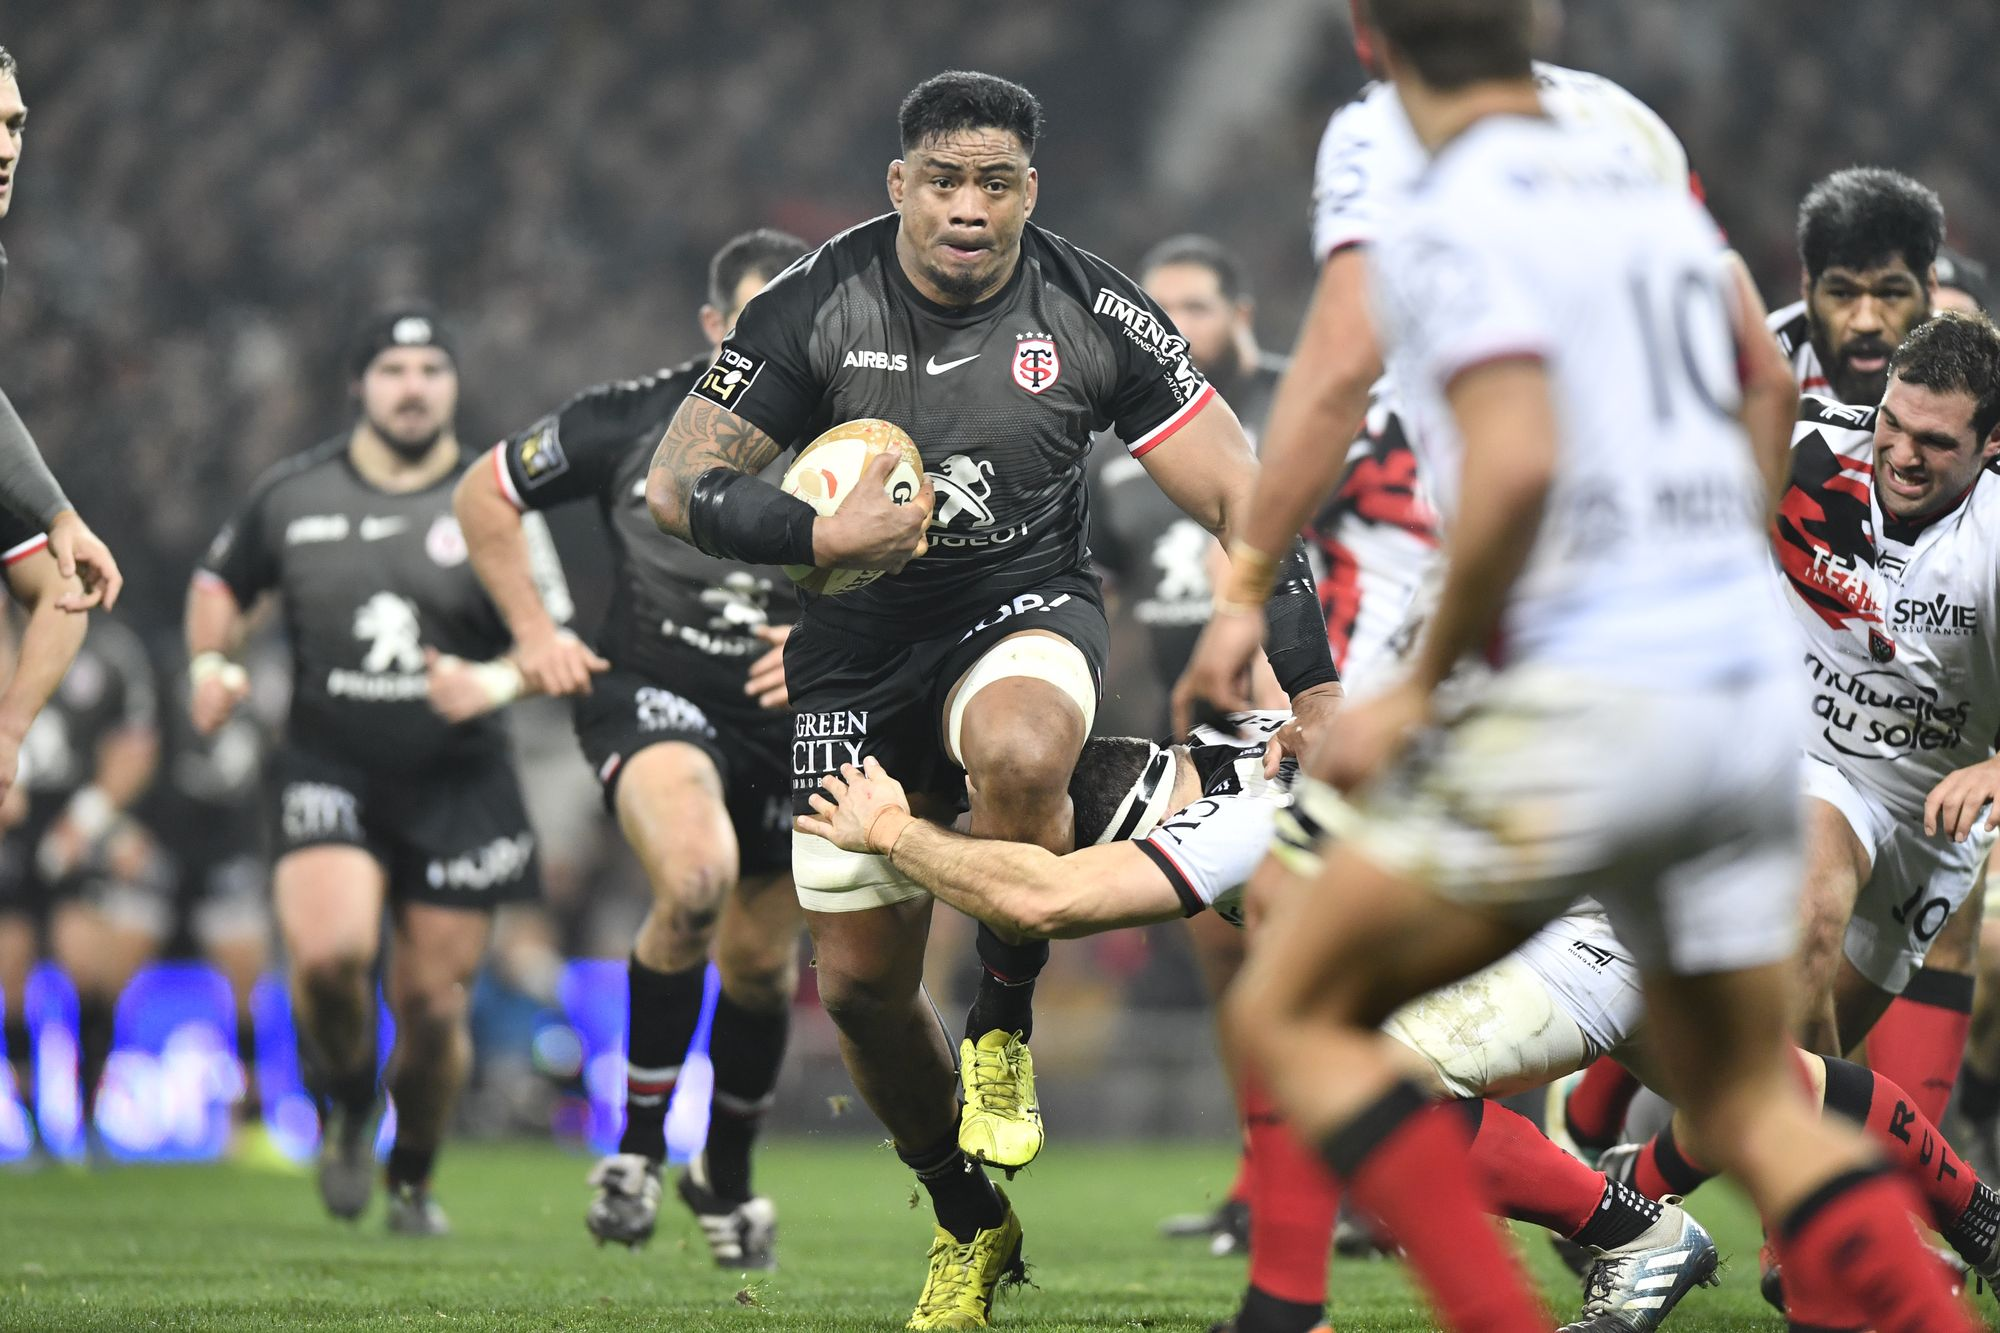 Rugby - Coupes d'Europe - Stade Toulousain : l'indispensable Joe Tekori